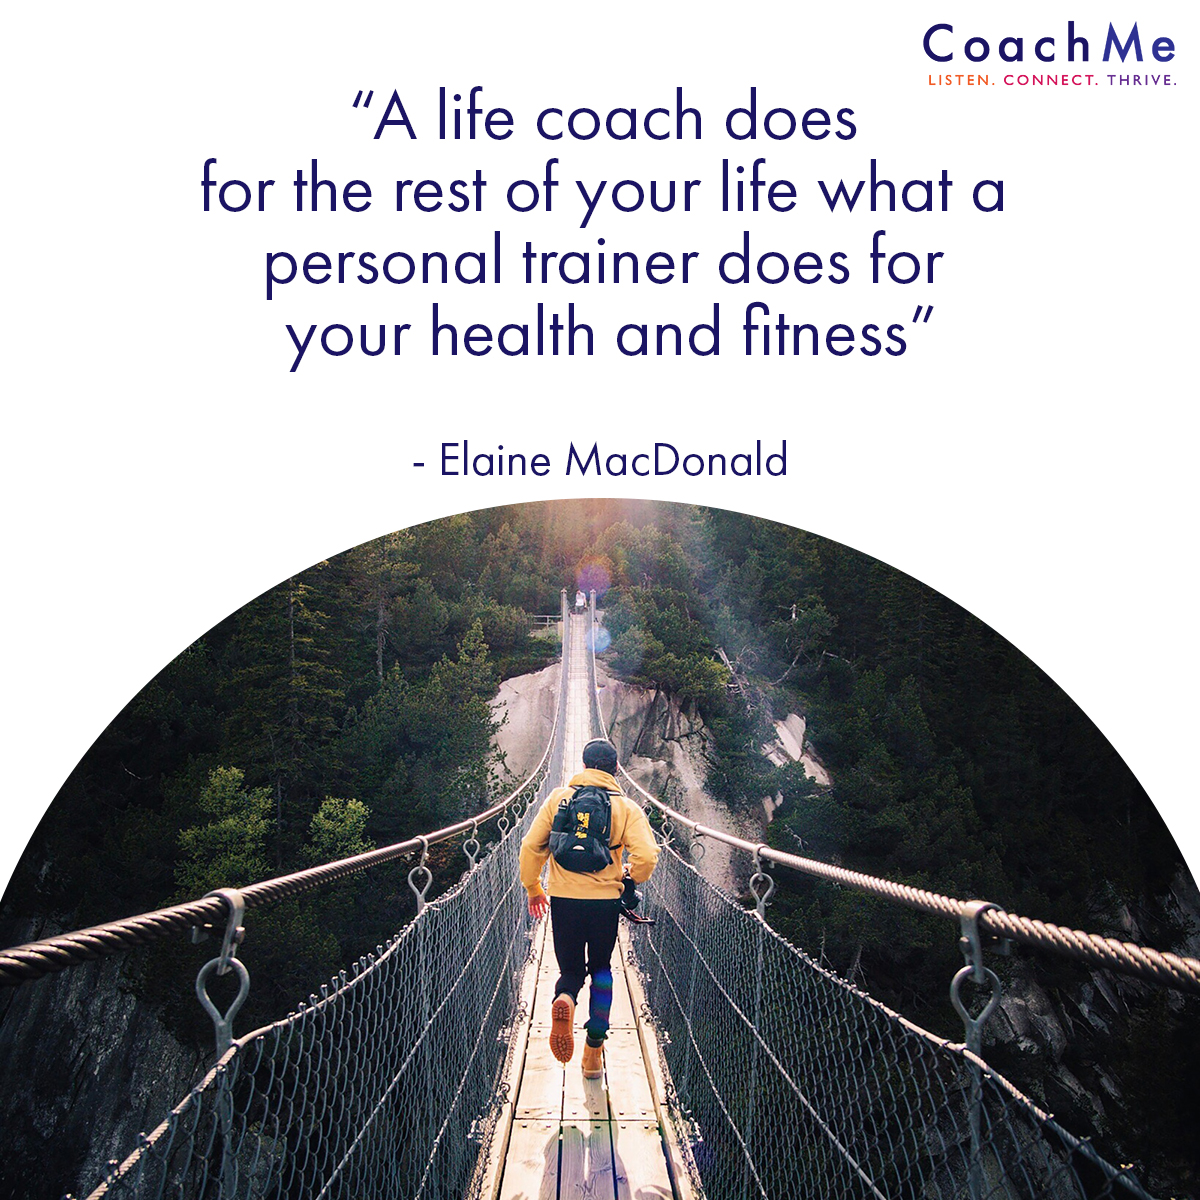 Coaching Images - Life Coach Quotes - Health and Fitness - Elaine MacDonald - CoachMe Vancouver